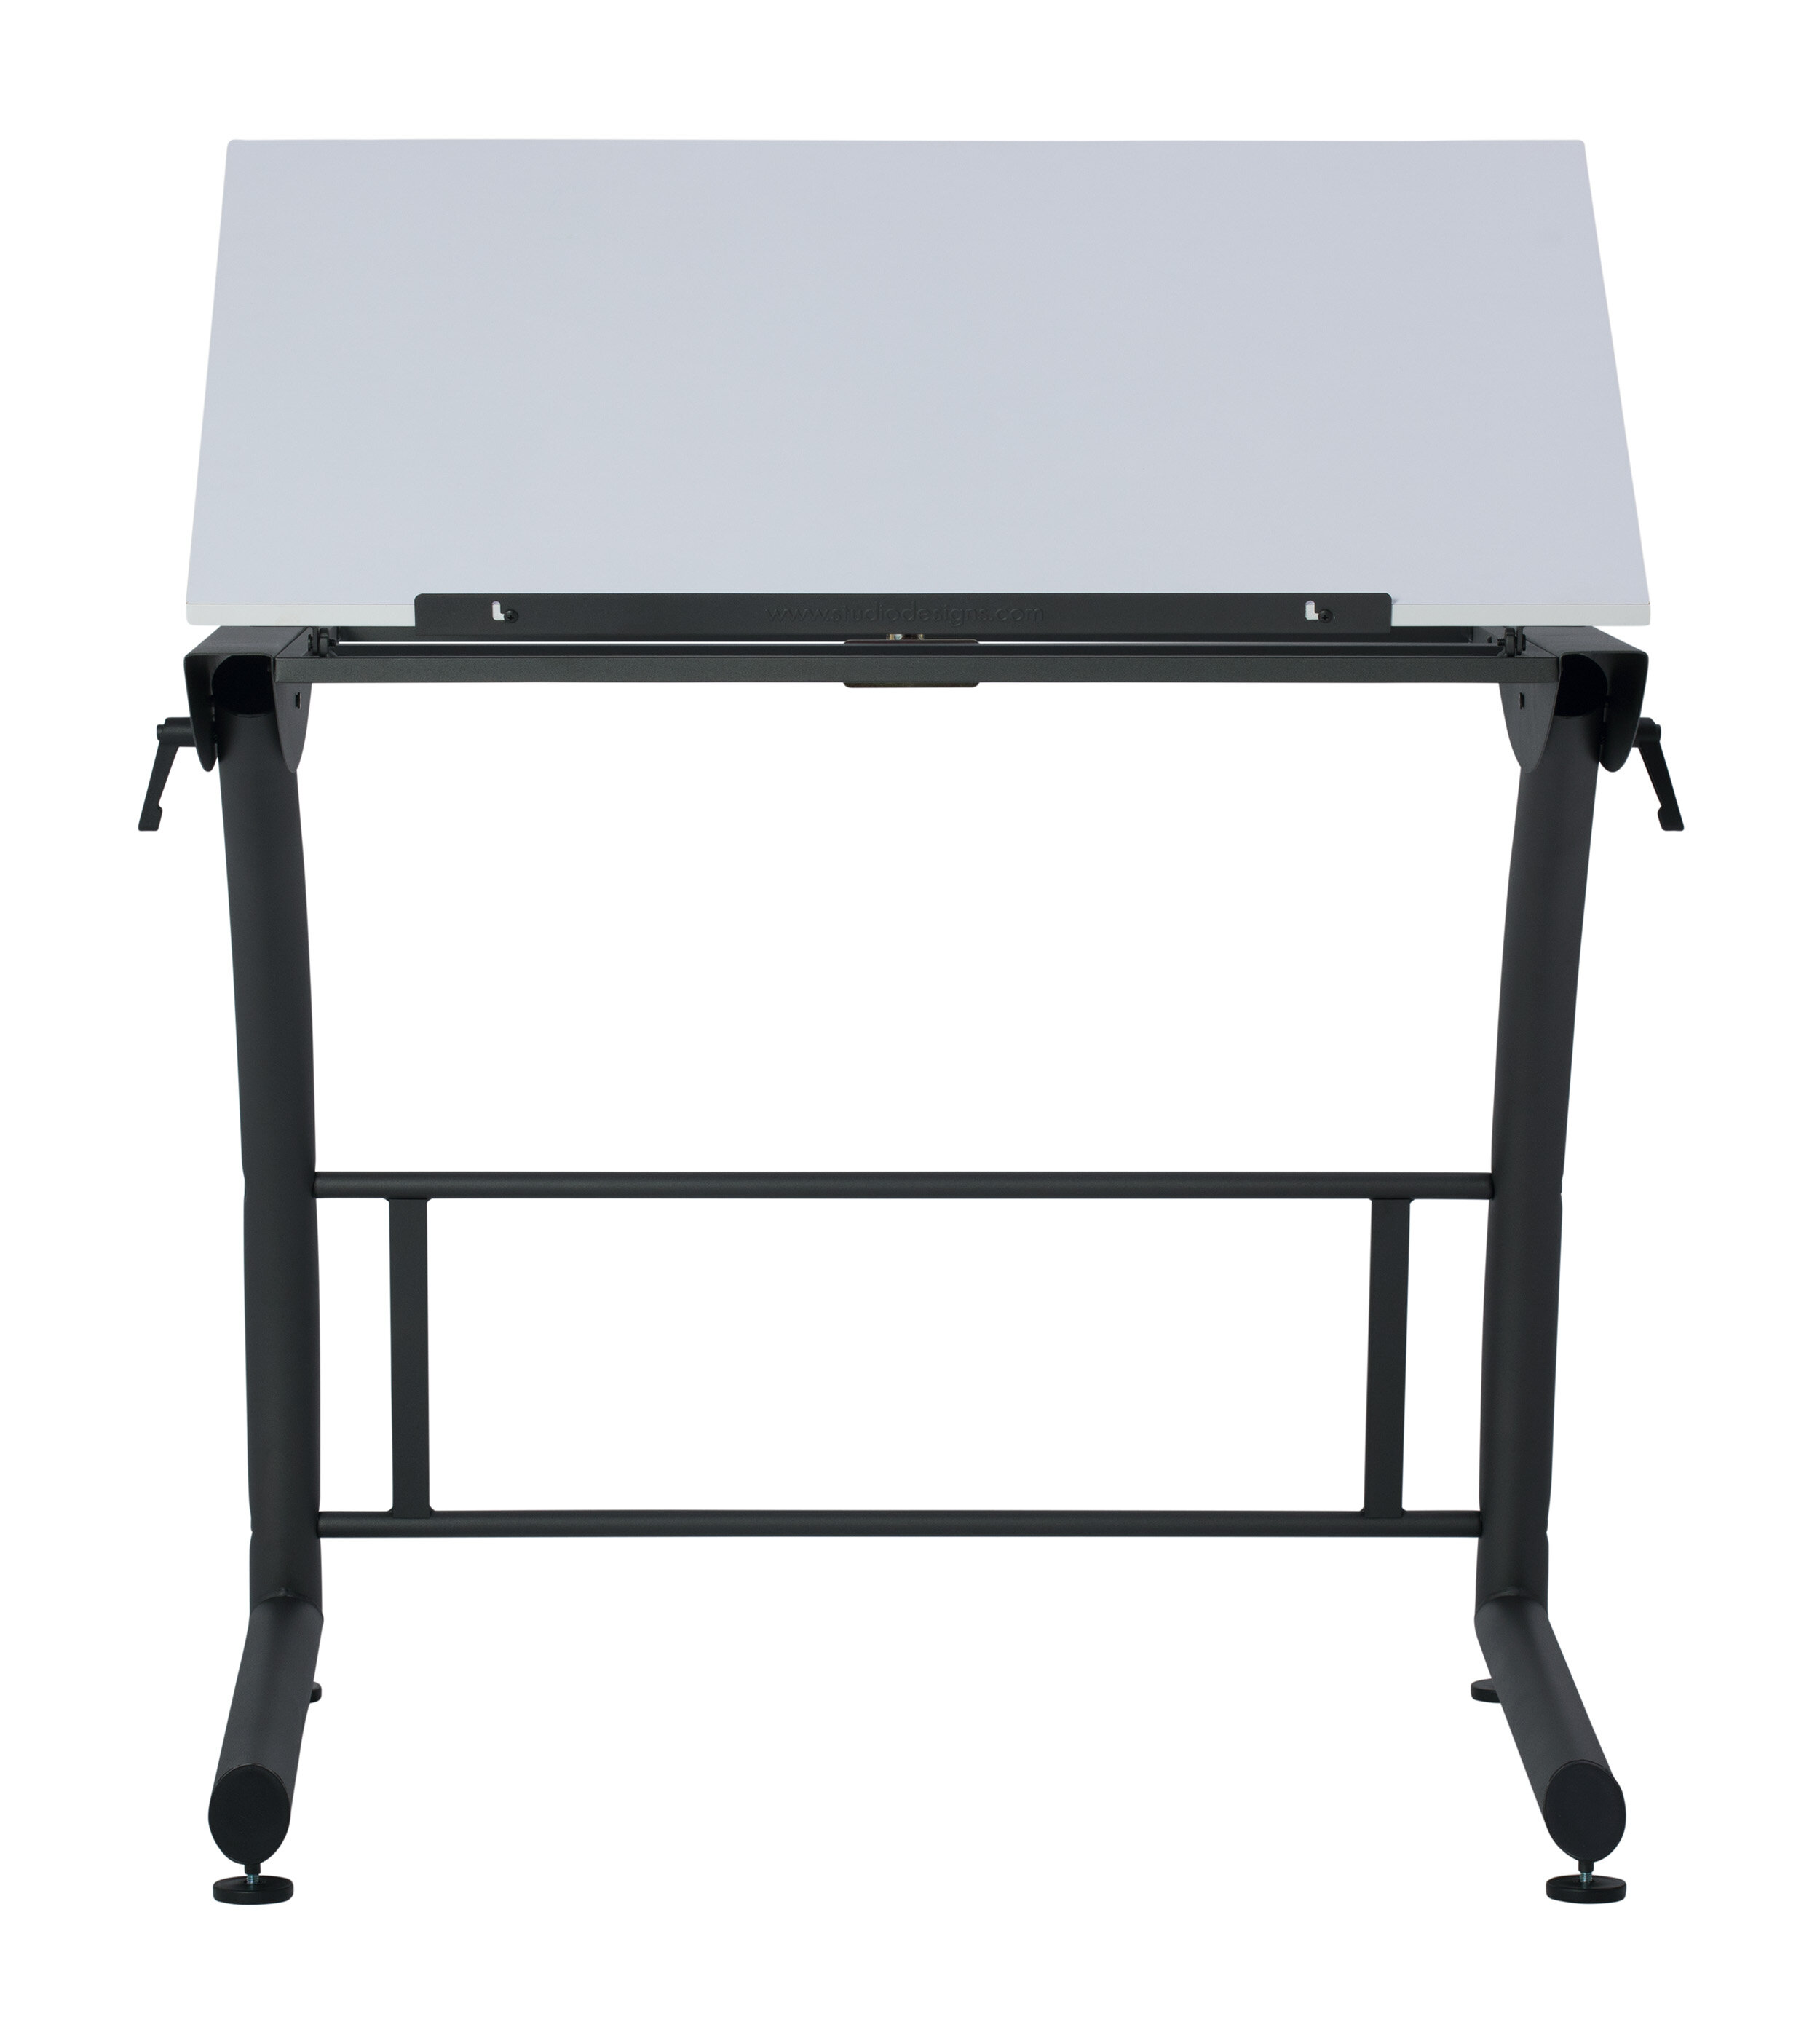 Super Triflex Standing Height Adjustable Drafting Table Home Interior And Landscaping Analalmasignezvosmurscom